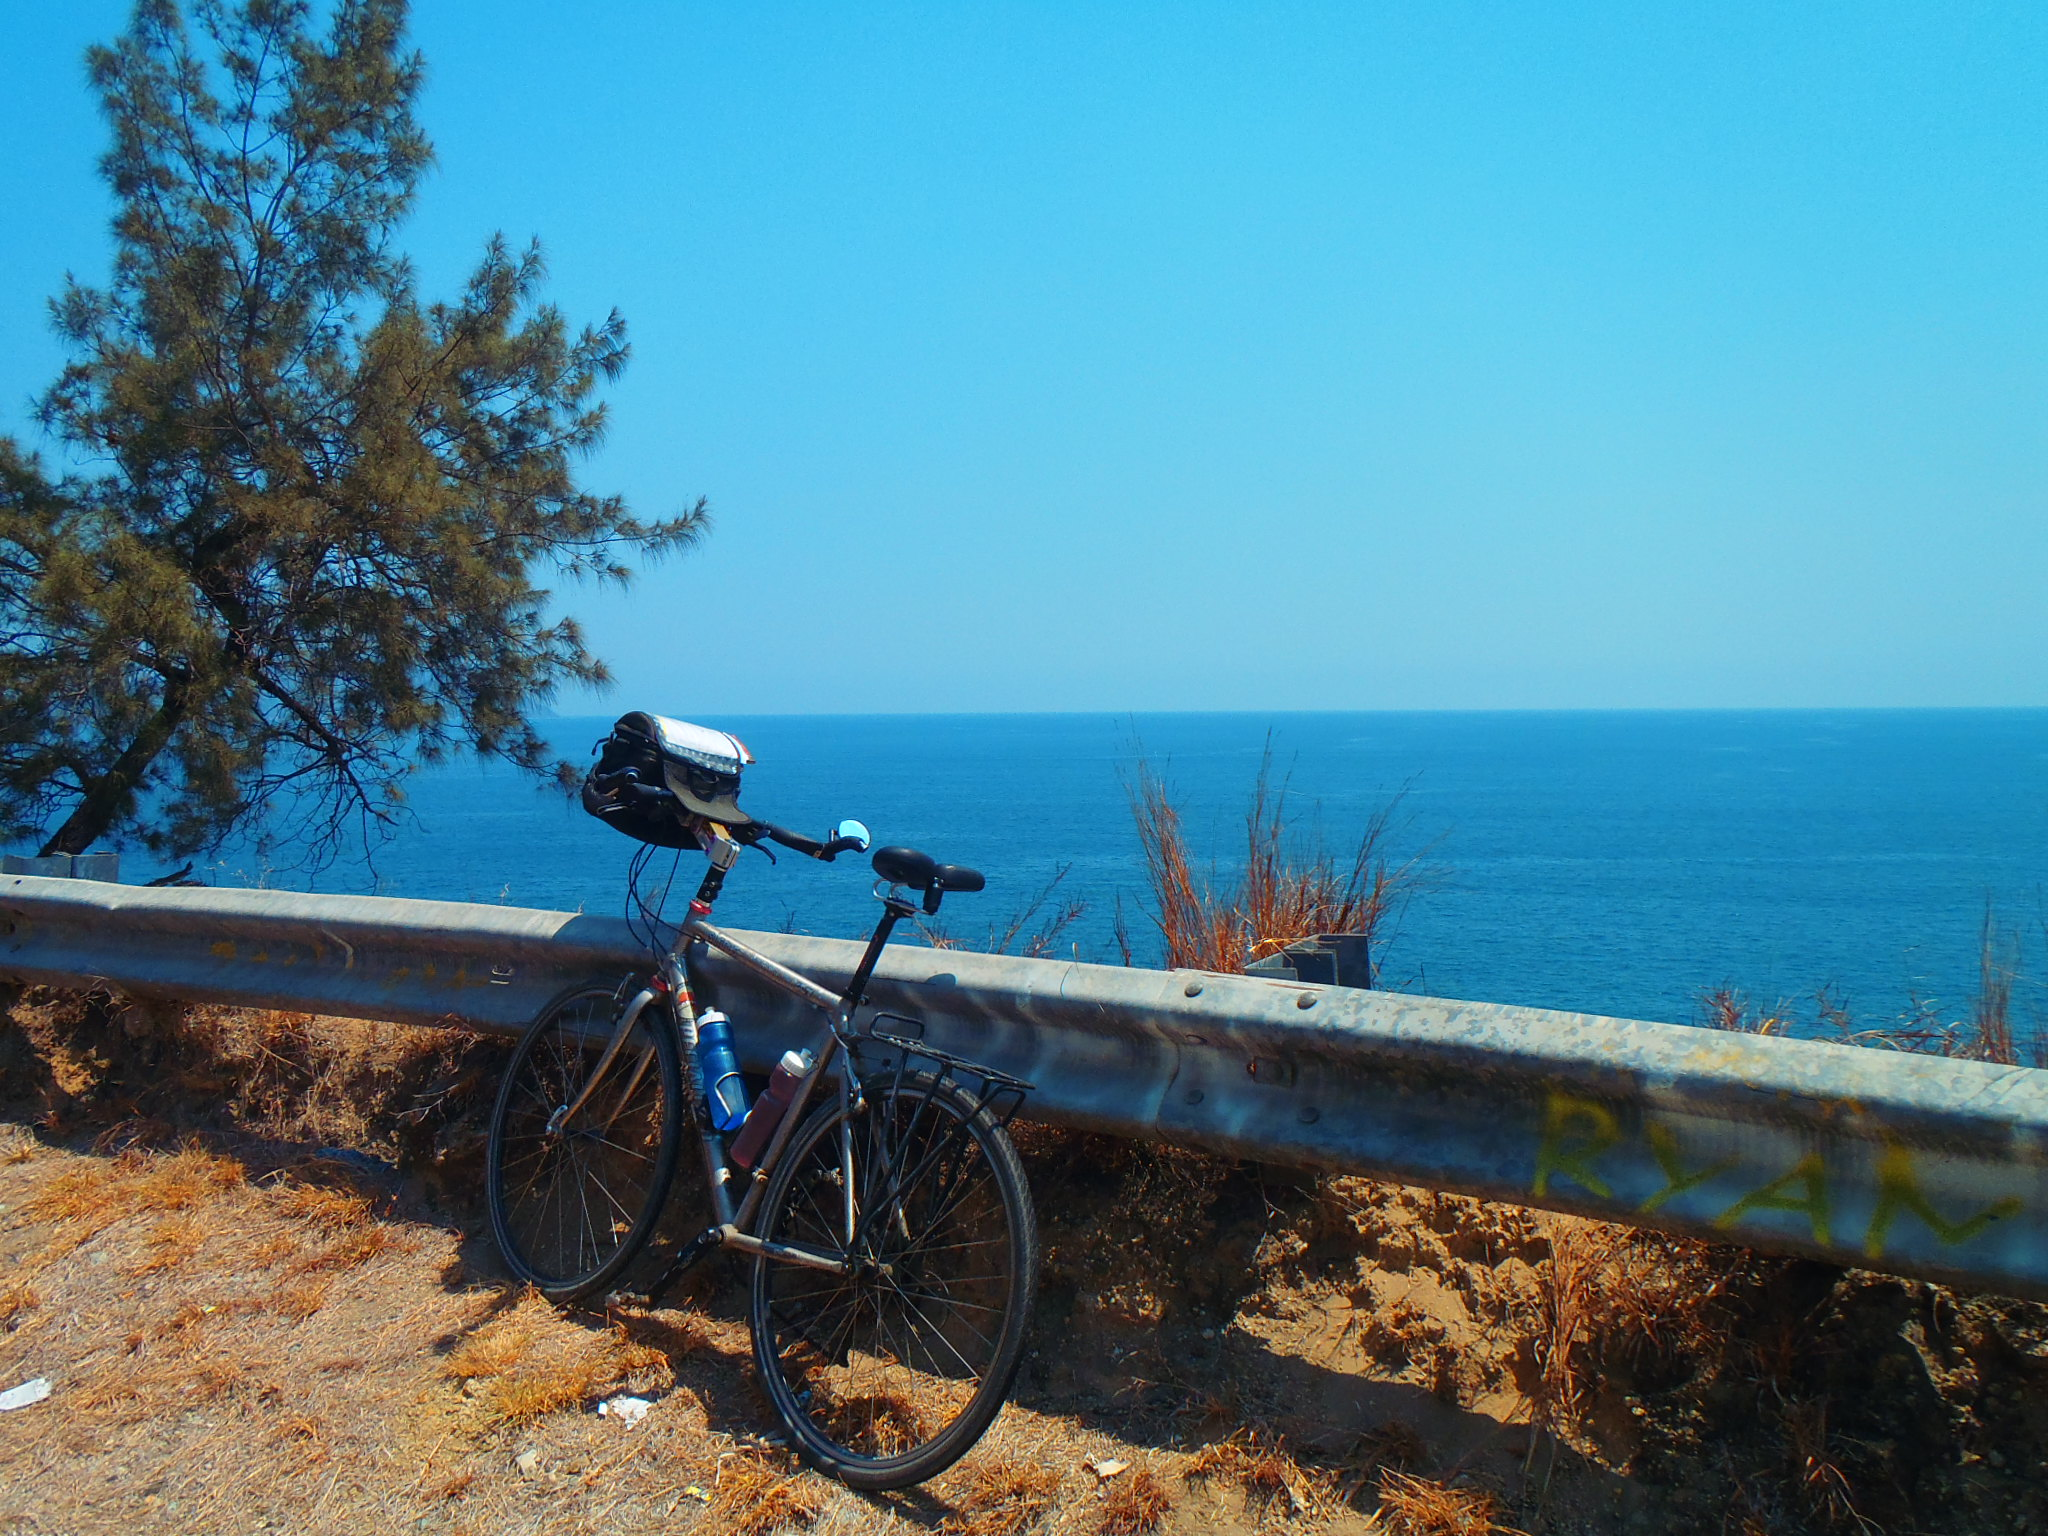 Henry-Tour D'Afrique-Bicycle along guard rail overlooking water